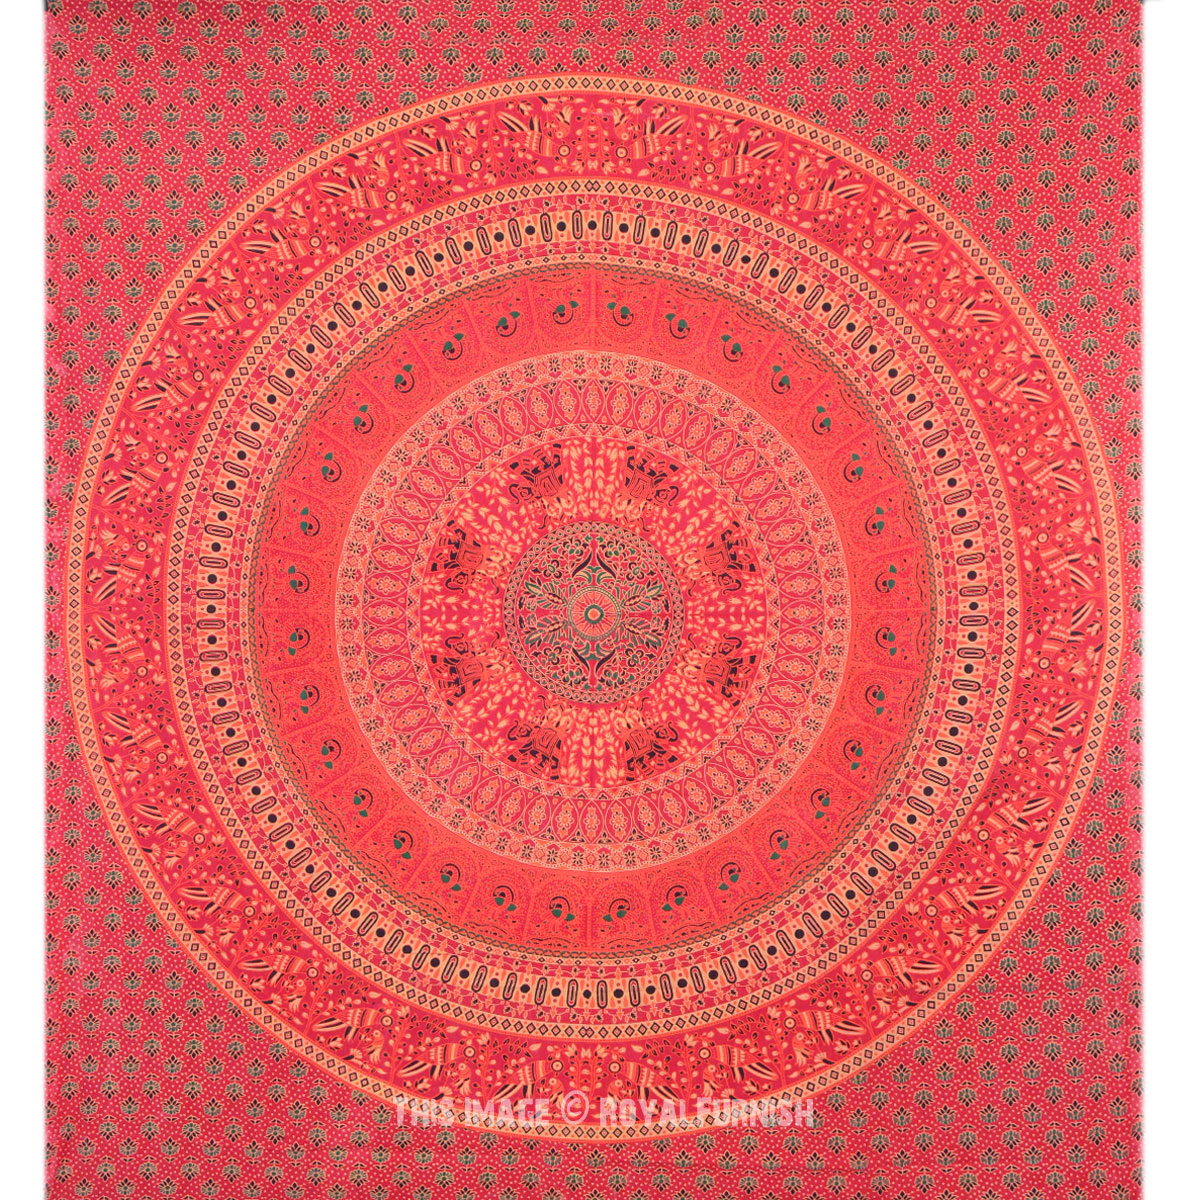 Indian Red Floral Bird Paradise Mandala Tapestry Bed Cover - RoyalFurnish.com